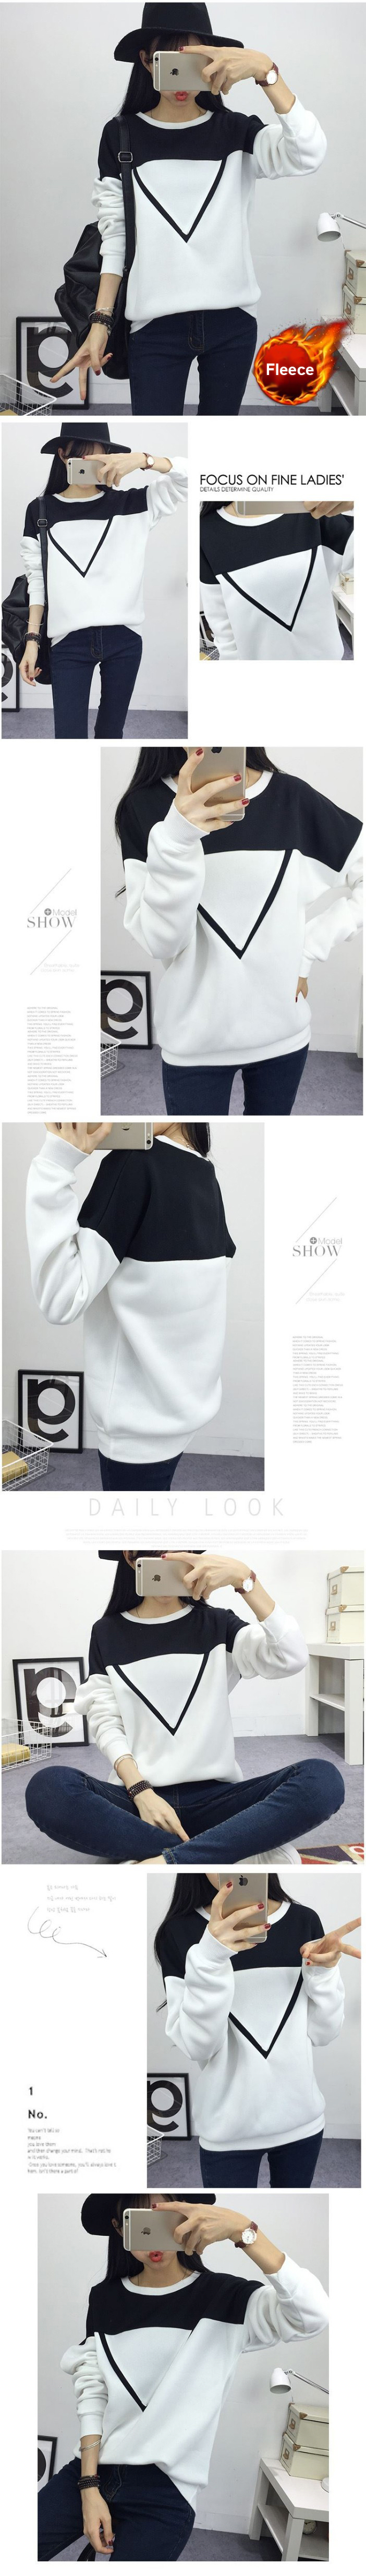 HTB1mIi8jDXYBeNkHFrdq6AiuVXam - Winter New Fashion Black and White Spell Color Patchwork Hoodies Women V Pattern Pullover Sweatshirt Female Tracksuit M-XXL